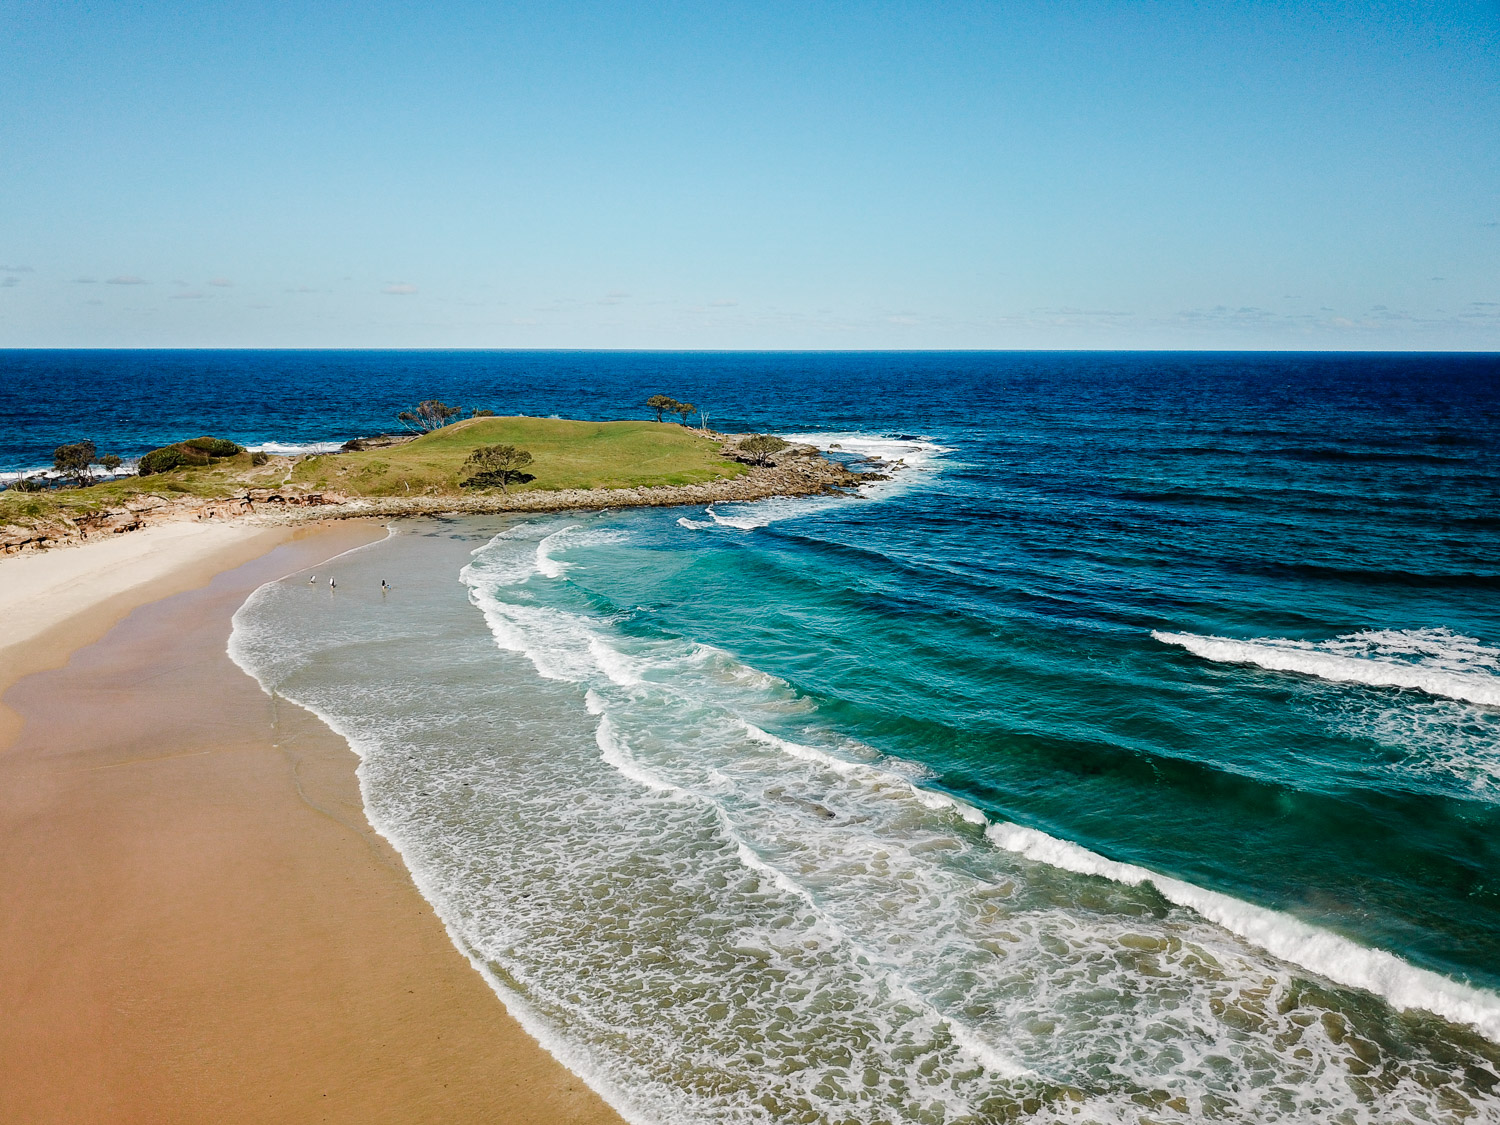 Horizon shot of the stunning coastline in northern New South Wales.